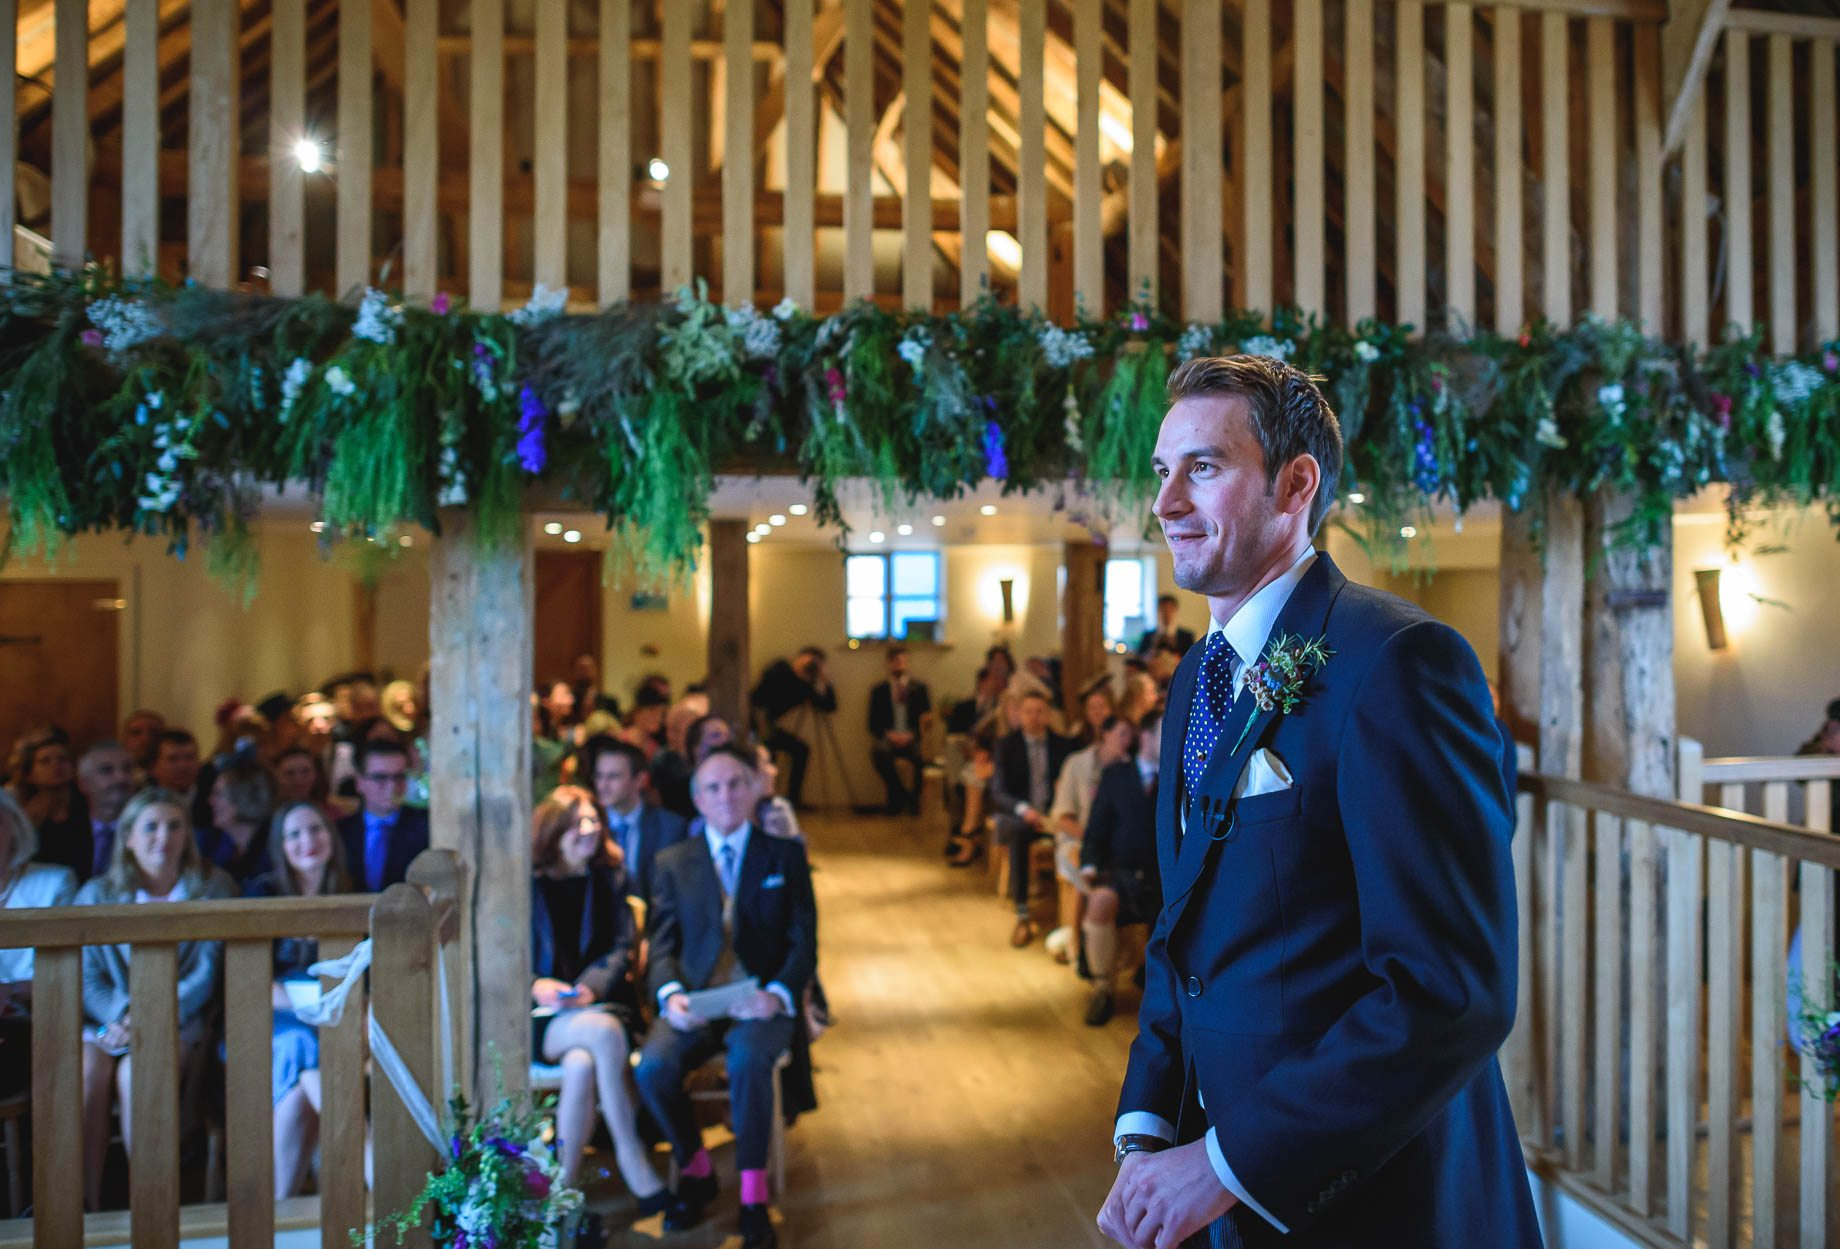 Bury Court Barn wedding photography - Ashley and Henry by Guy Collier Photography (38 of 188)